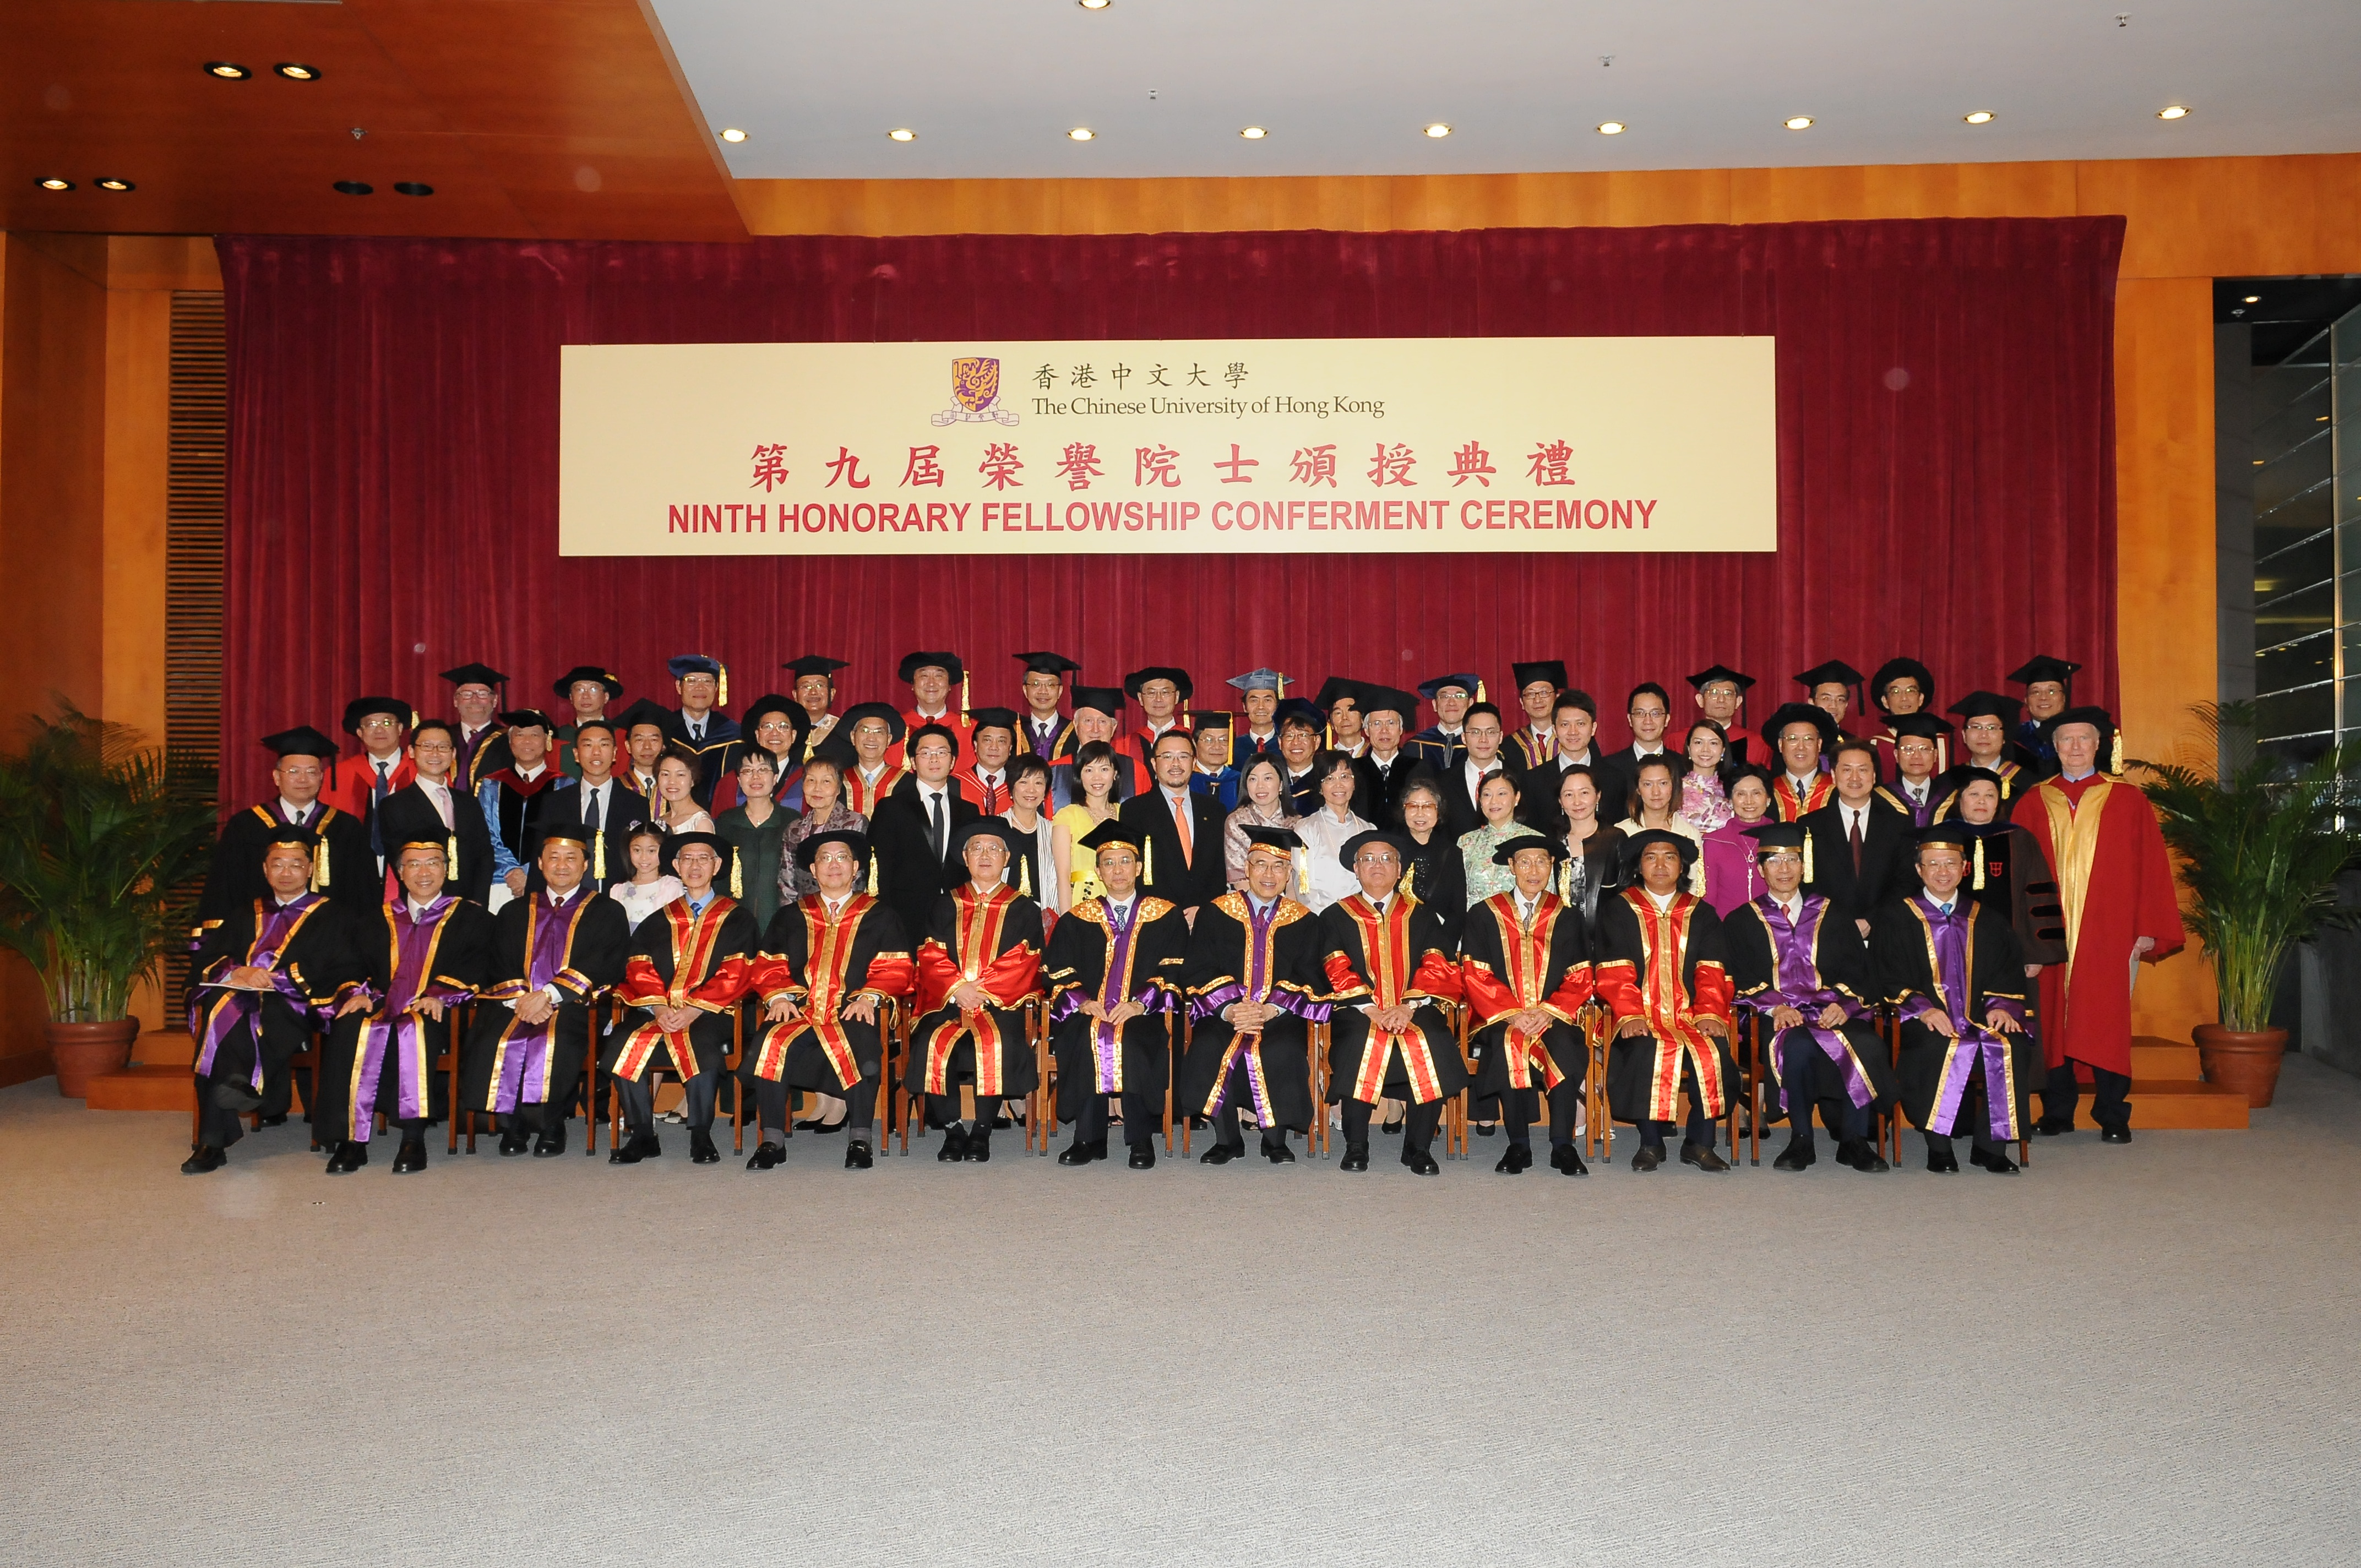 Group photo of the six honorary fellows, Dr. Vincent Cheng, Chairman of the Council (middle of the front row), Professor Lawrence J. Lau, Vice-Chancellor (6th from the right, front row), Professor Benjamin W. Wah, Provost (3rd from the left, front row), and four Pro-Vice-Chancellors: Professor Henry Wong (1st from the left), Professor Jack Cheng (2nd from the left), Professor Kenneth Young (2nd from the right) and Professor Michael Hui (1st from the right).